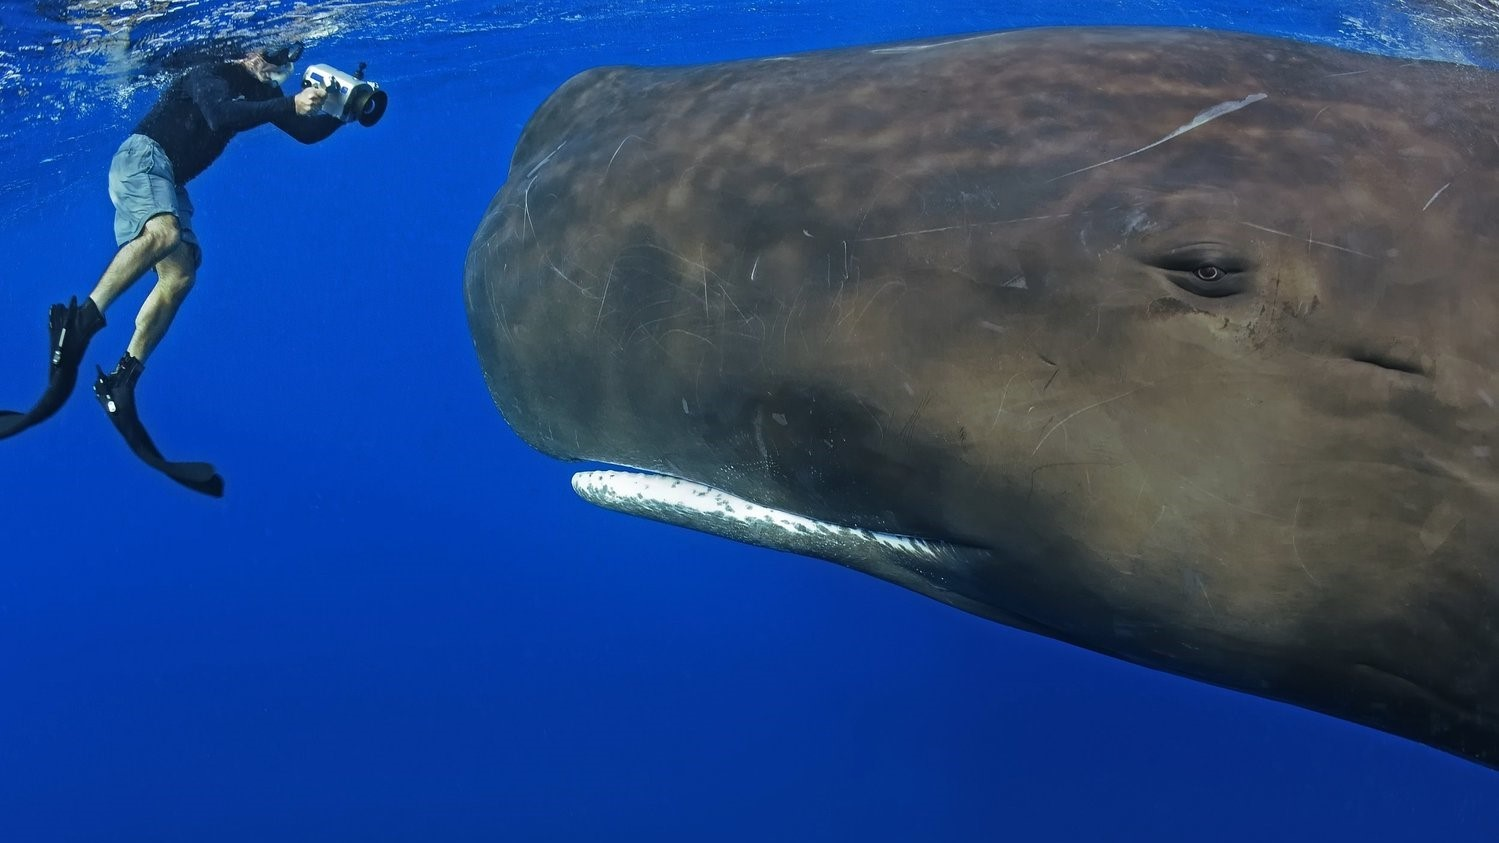 Imformation on sperm whales images 259